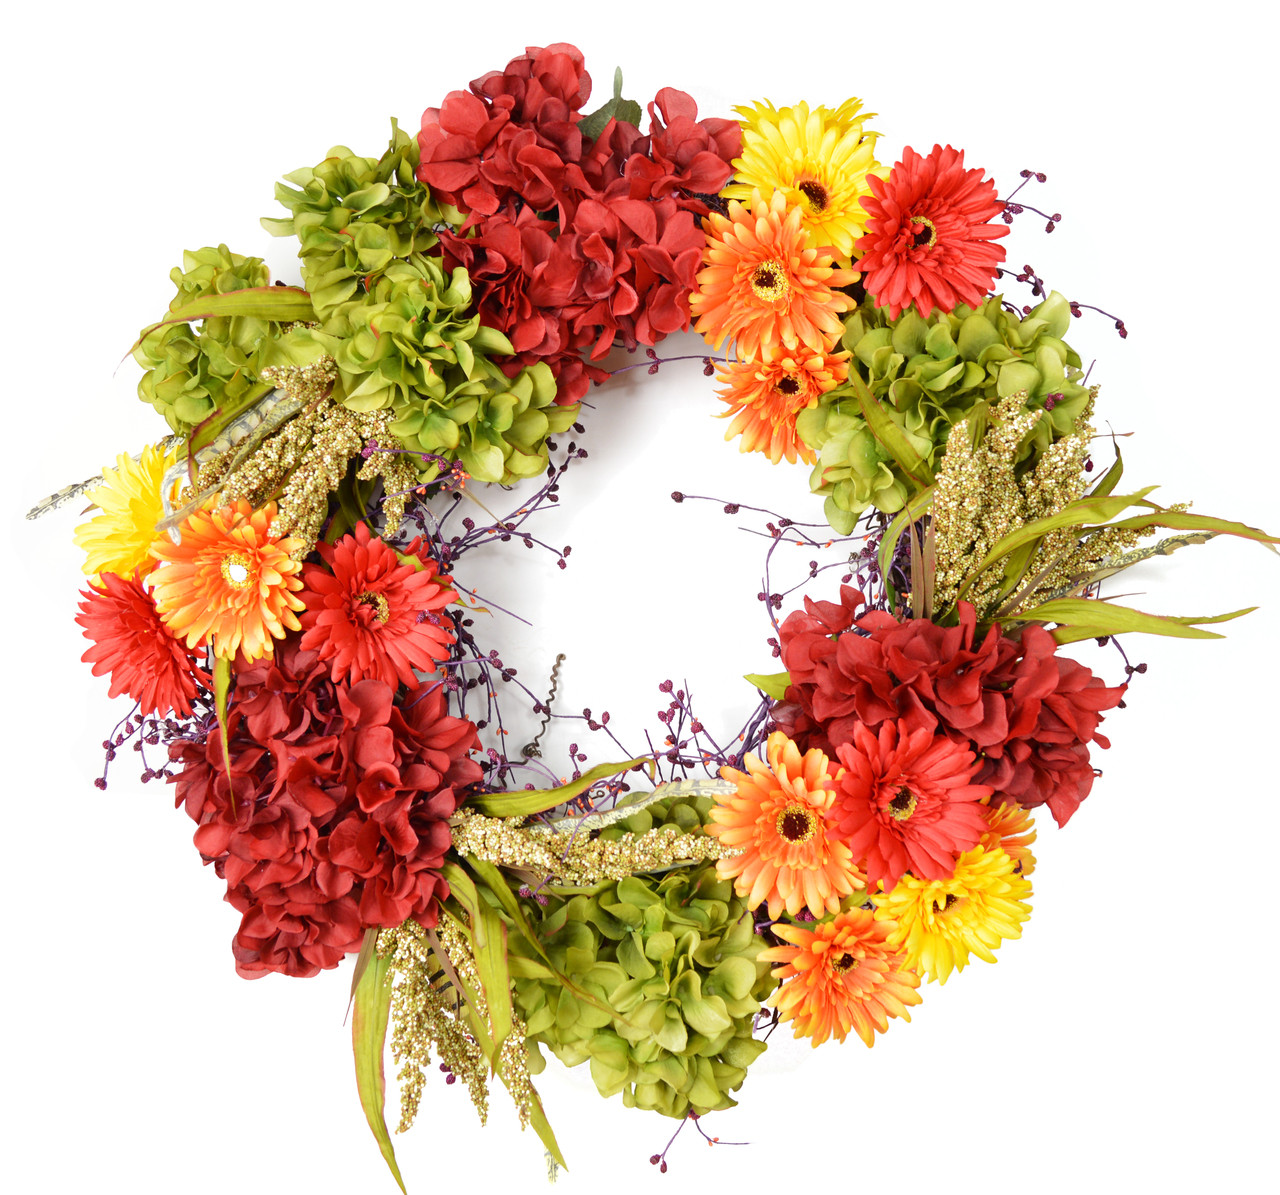 Cabuya Daisy Silk Flower Decorative Door Wreath The Wreath Depot